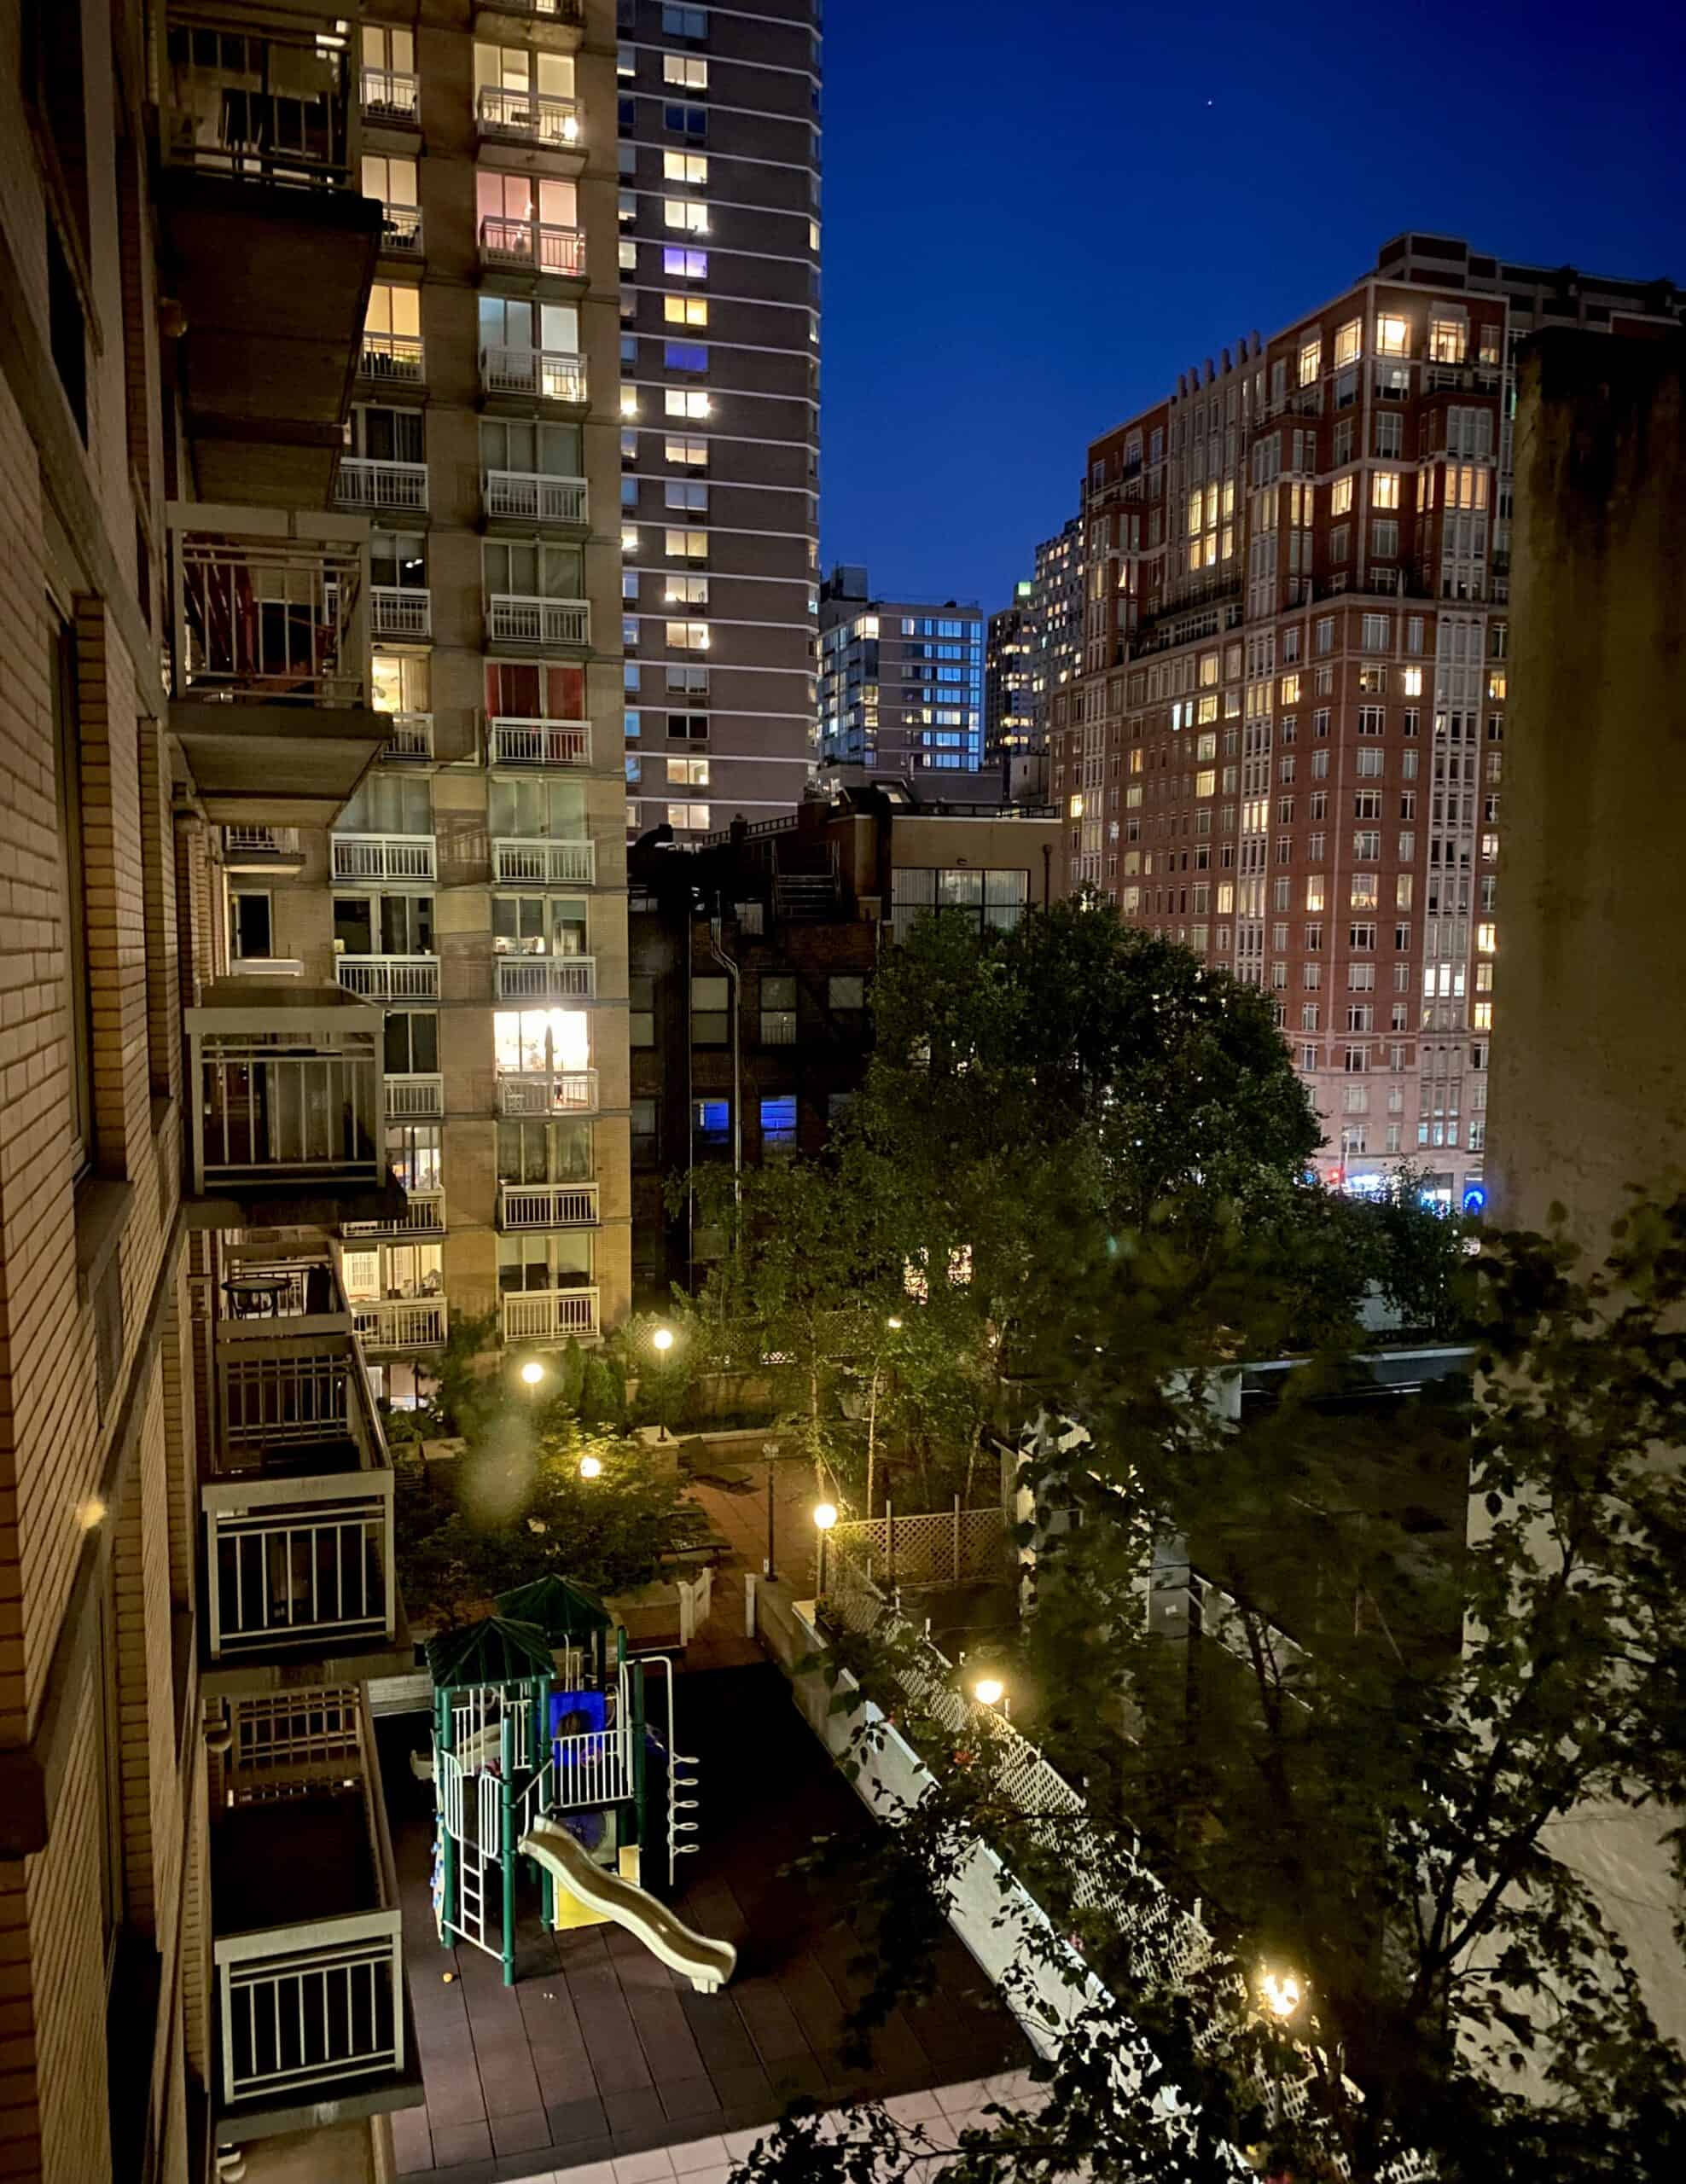 view at the rear of the Franklin hotel in the Upper East Side at night